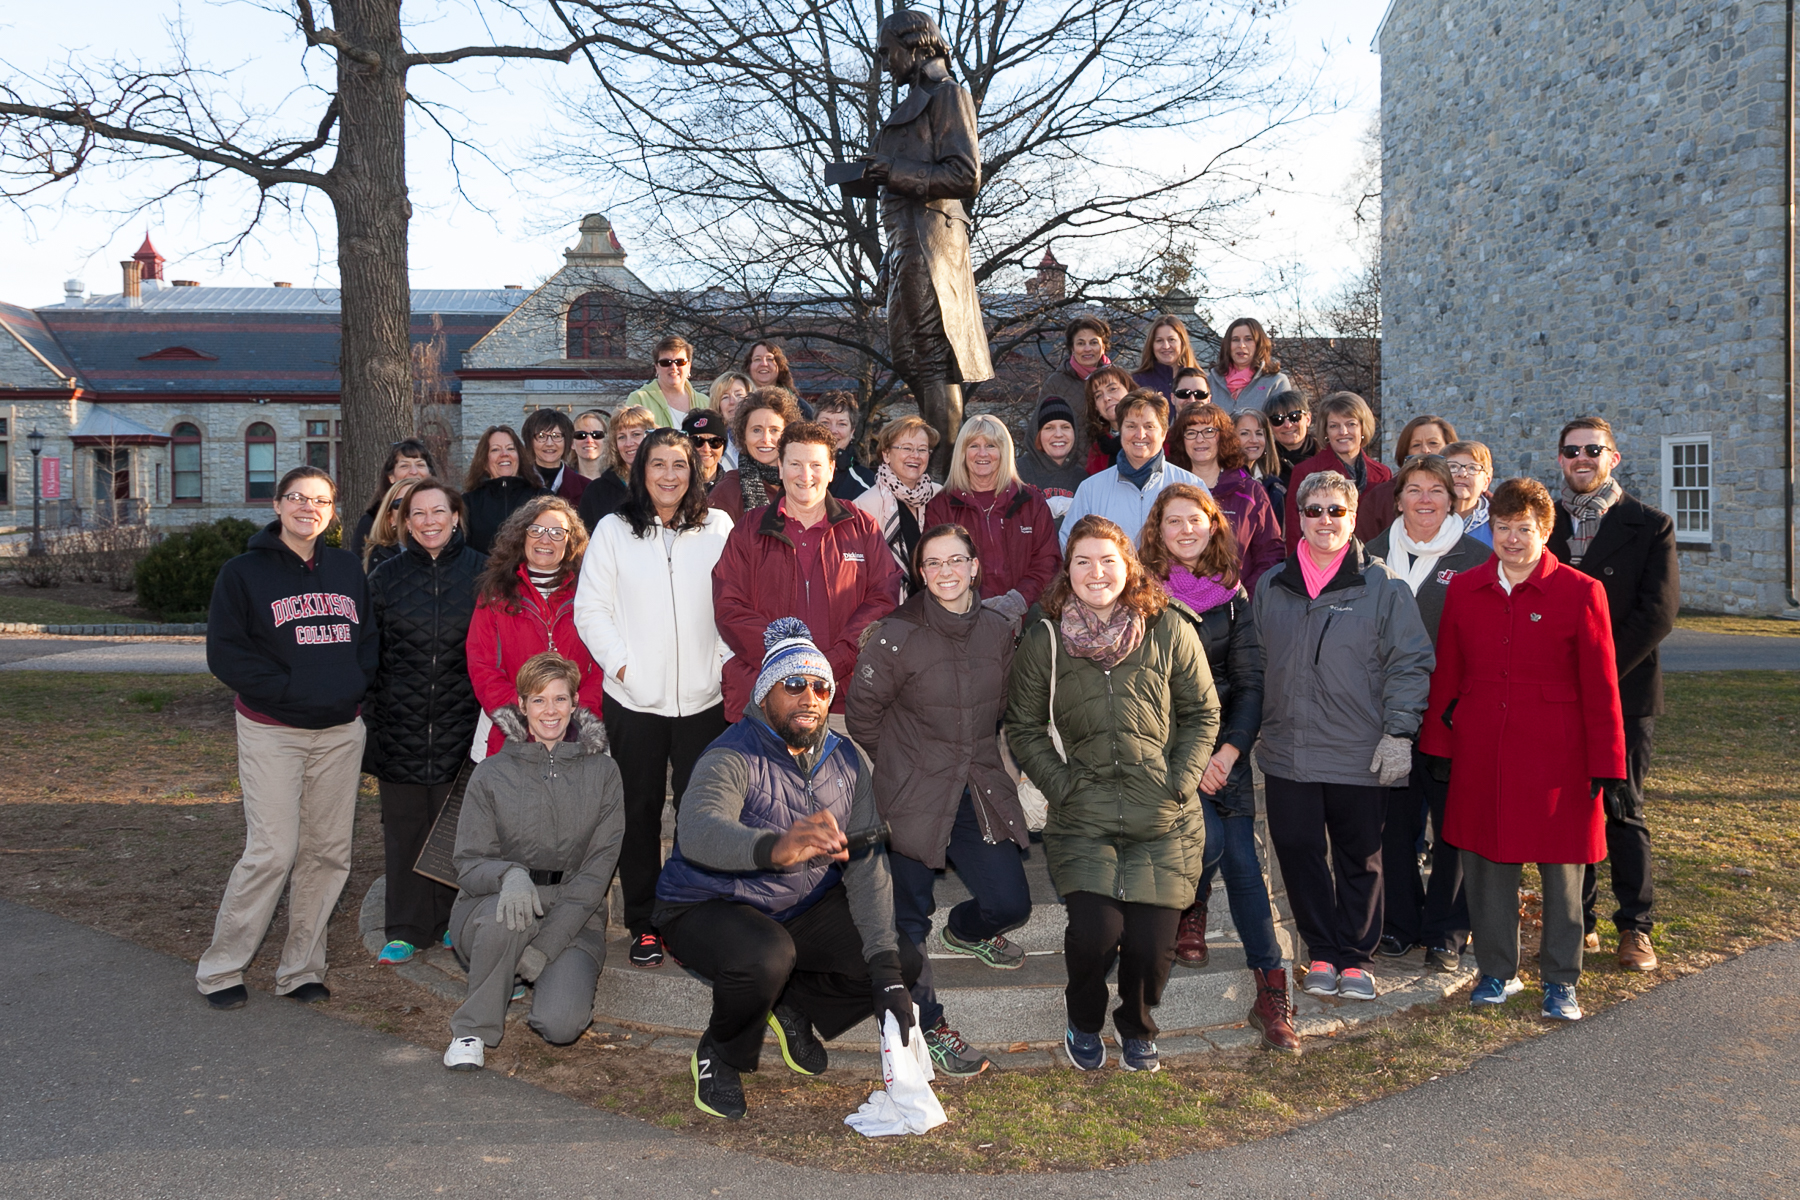 2018 spring into fitness challlenge kick-off walk